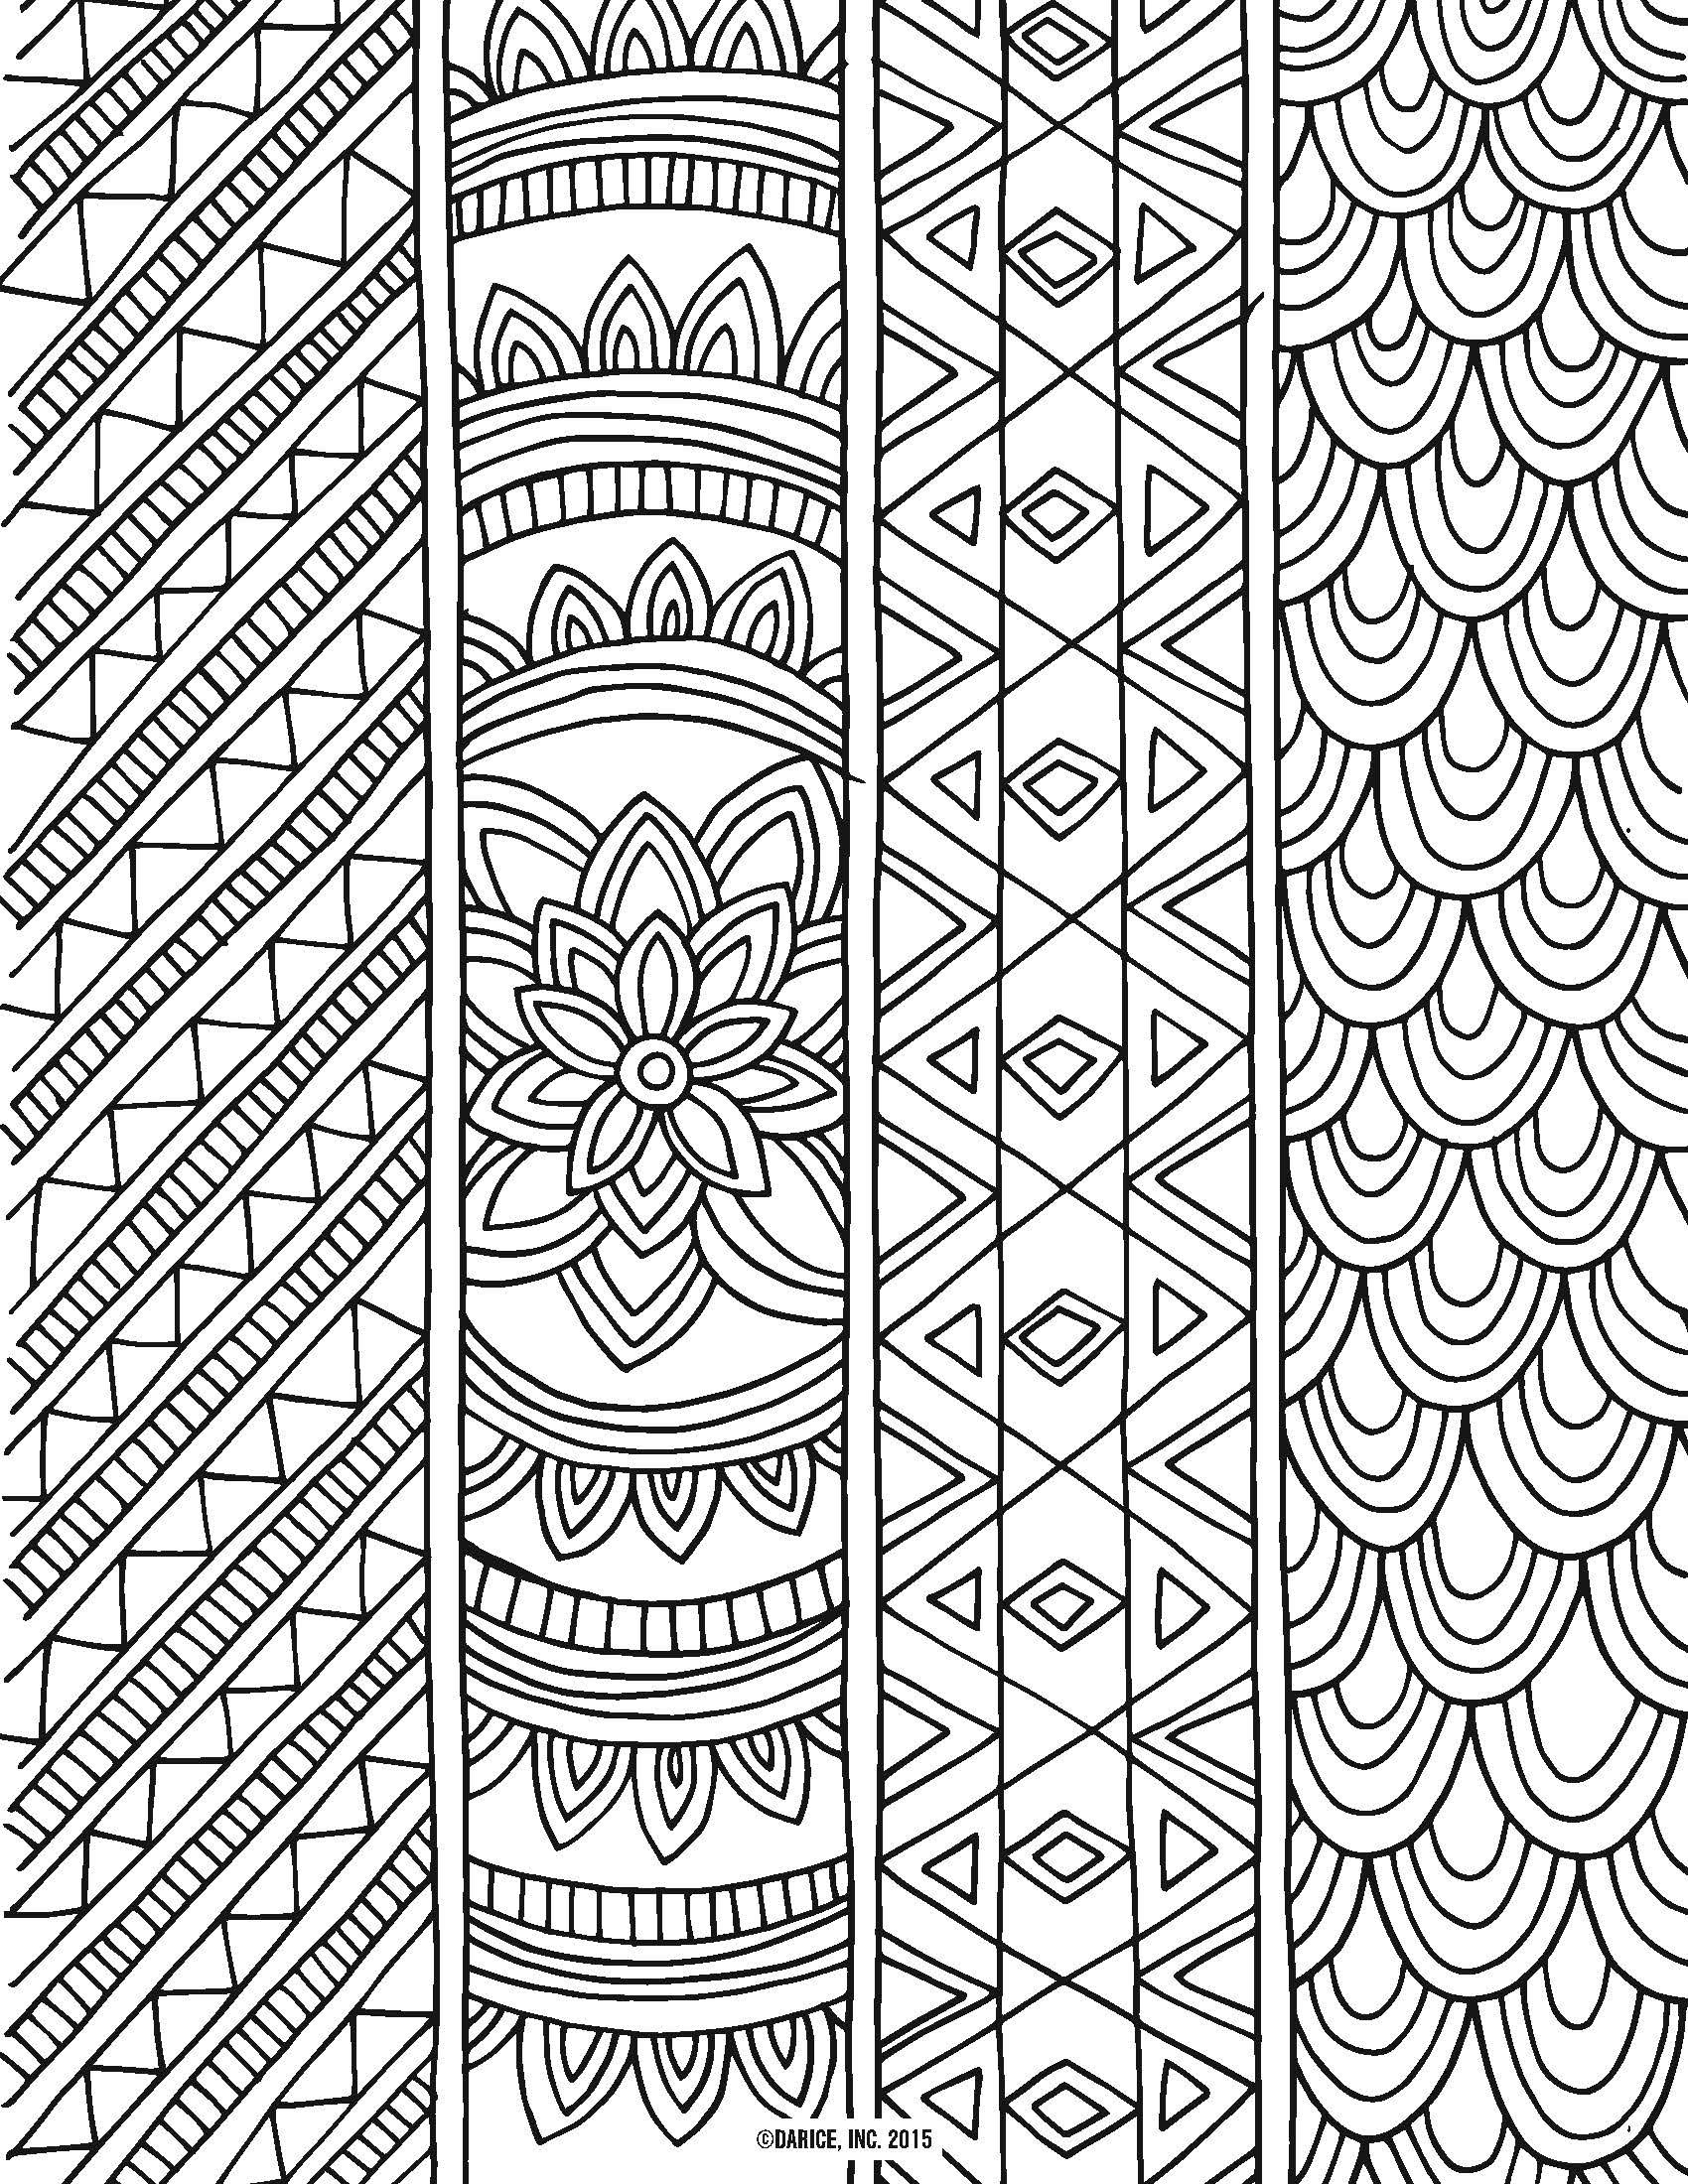 Colouring in for adults why - Try Out The Adult Coloring Book Trend For Yourself With Our 9 Free Adult Coloring Pages